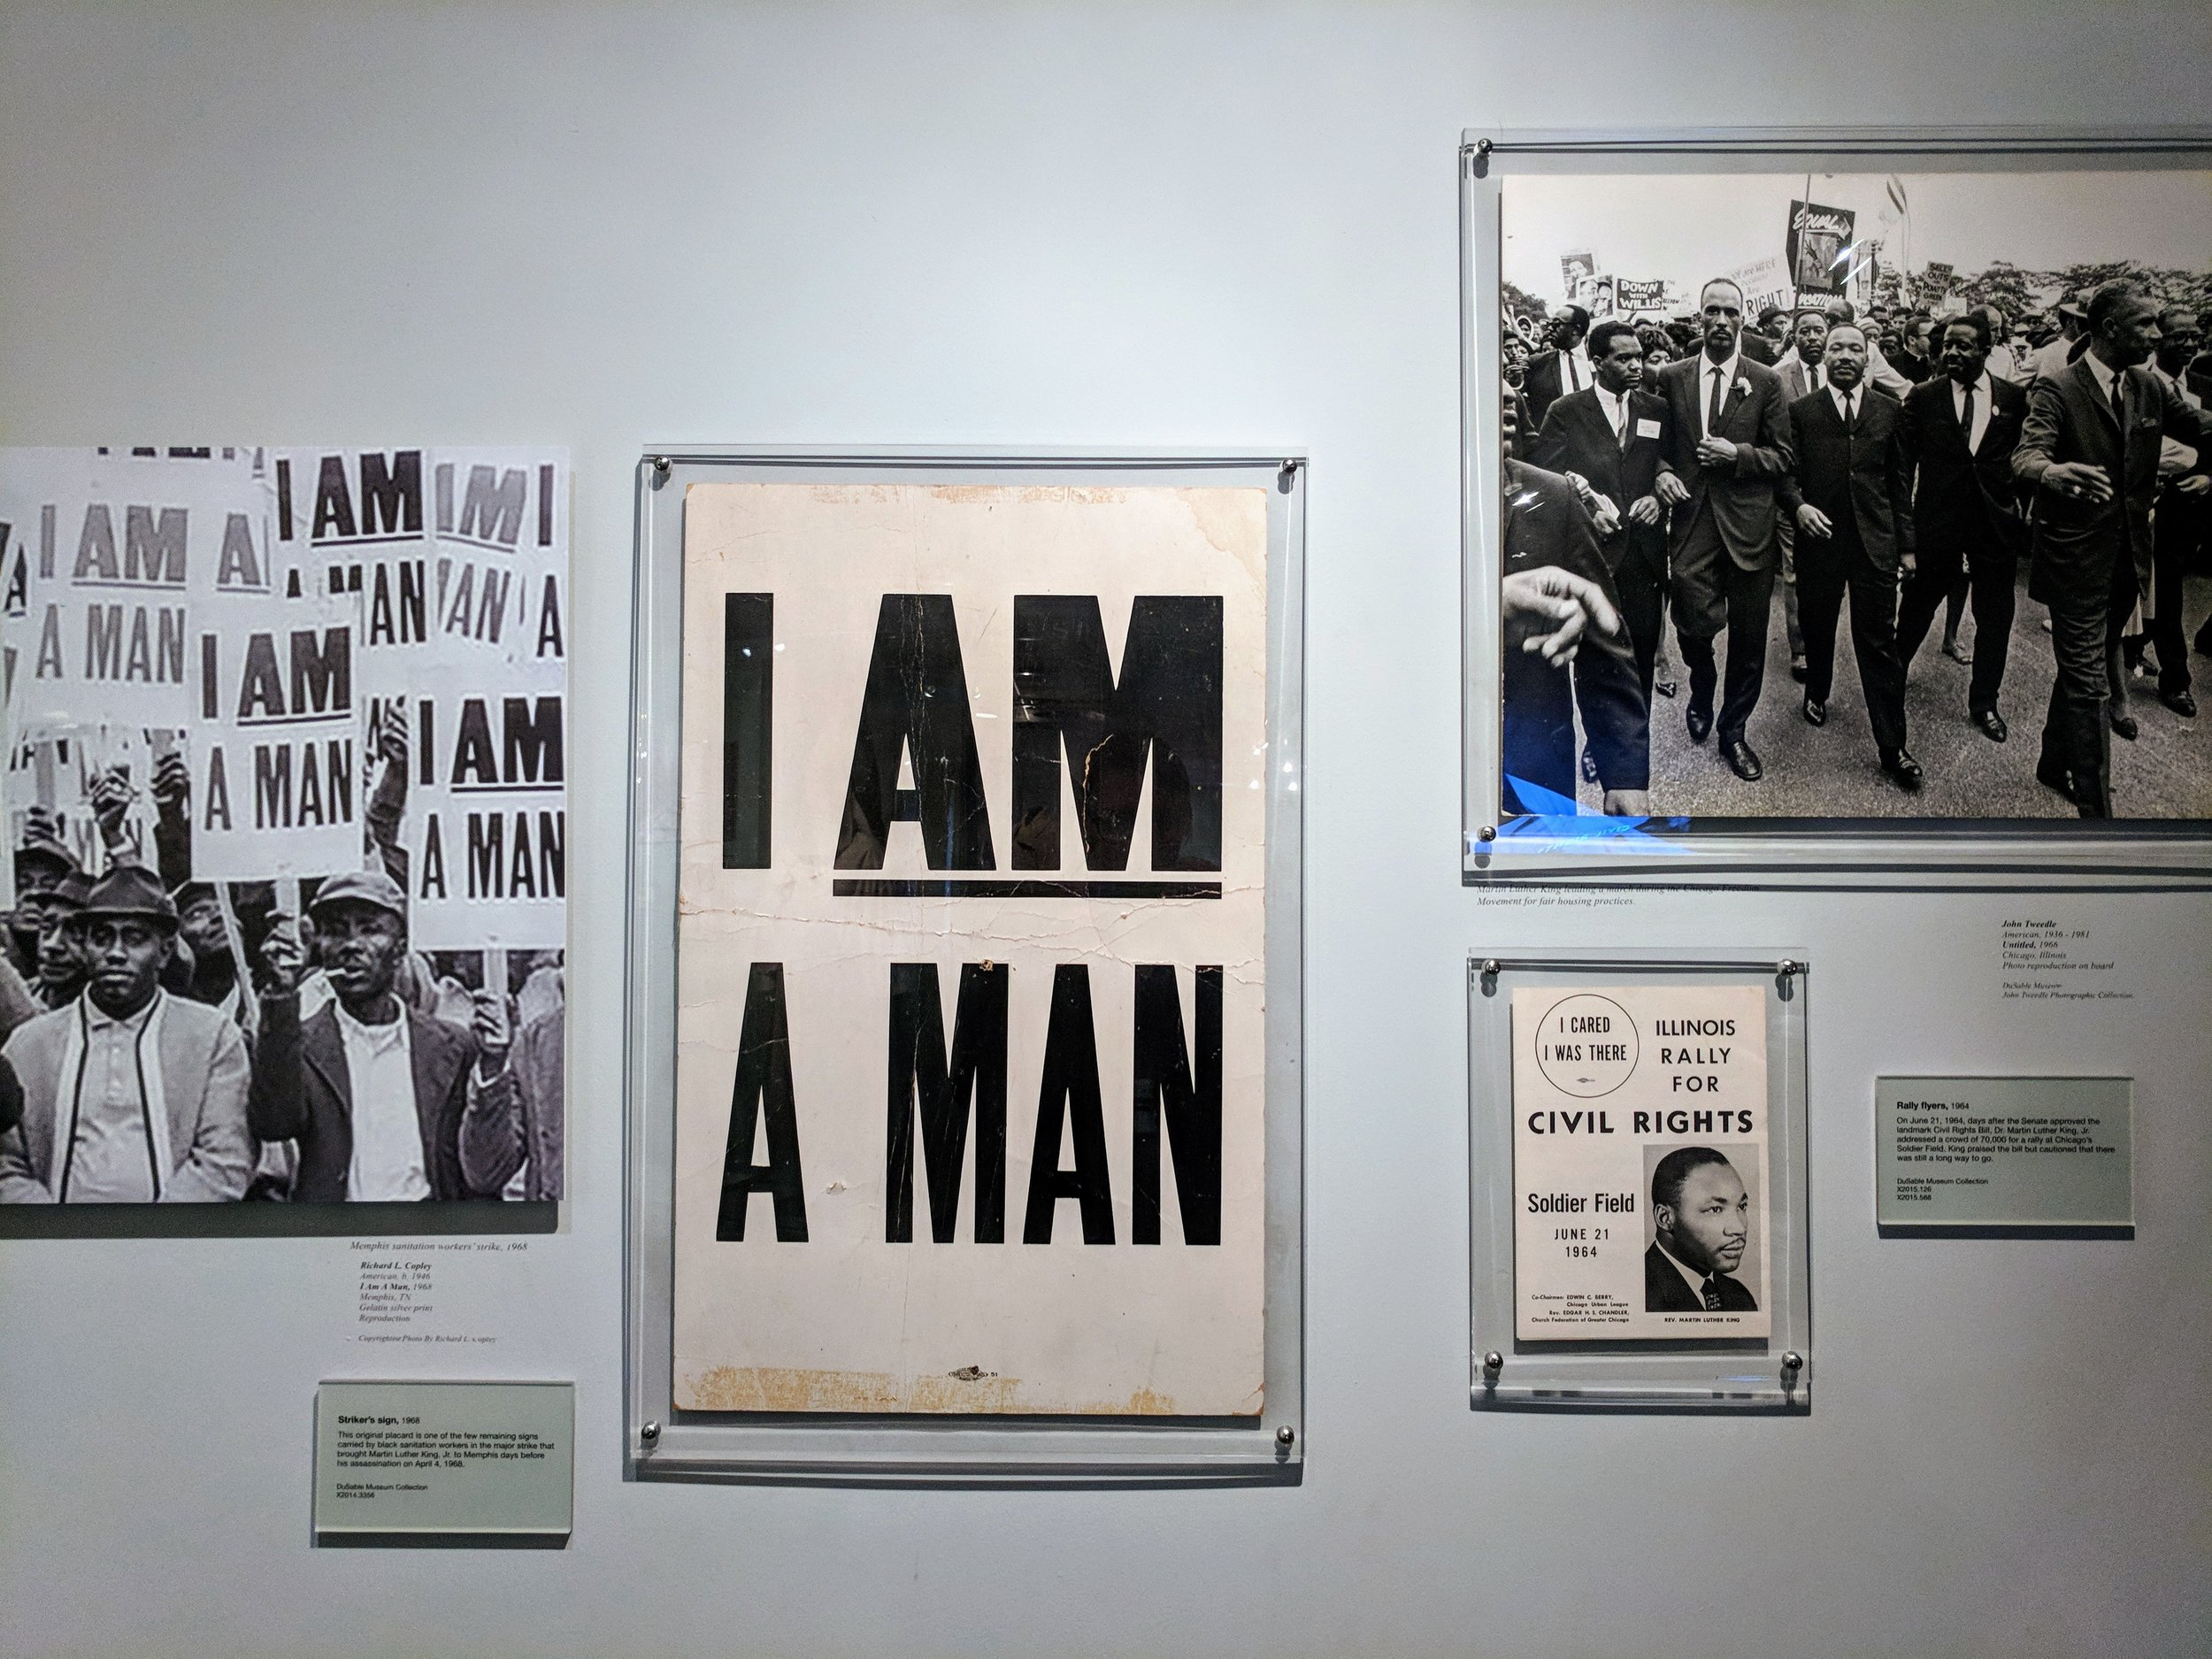 From DuSable Museum's exhibit Freedom, Resistance, and the Journey Toward Equality